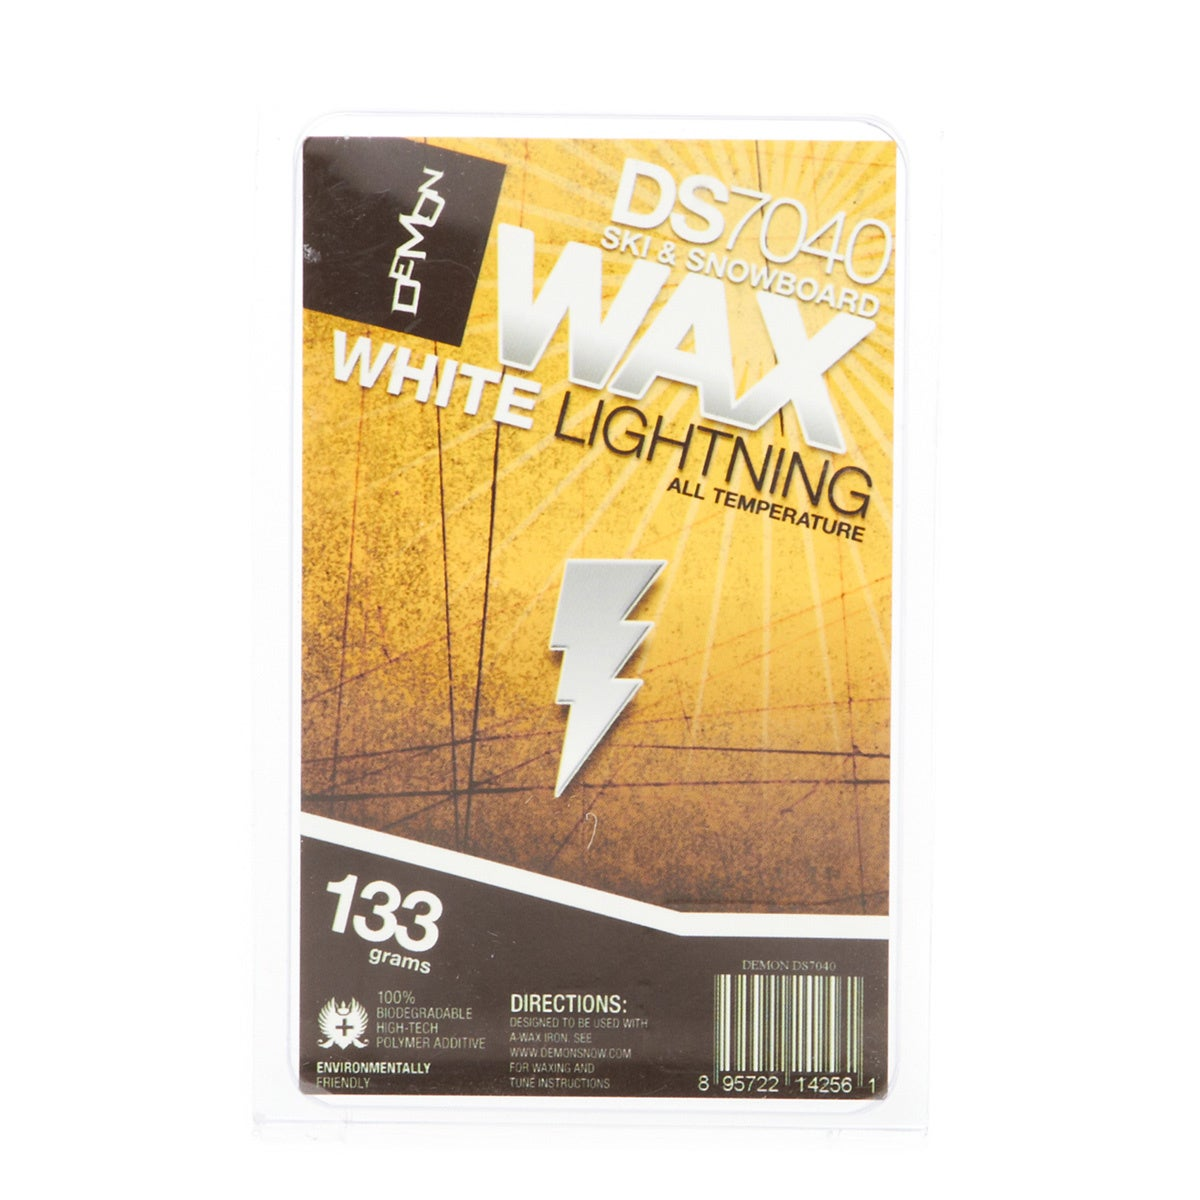 Snowboard Wax Demon White Lightning Team Wax Universal (133gm) - White